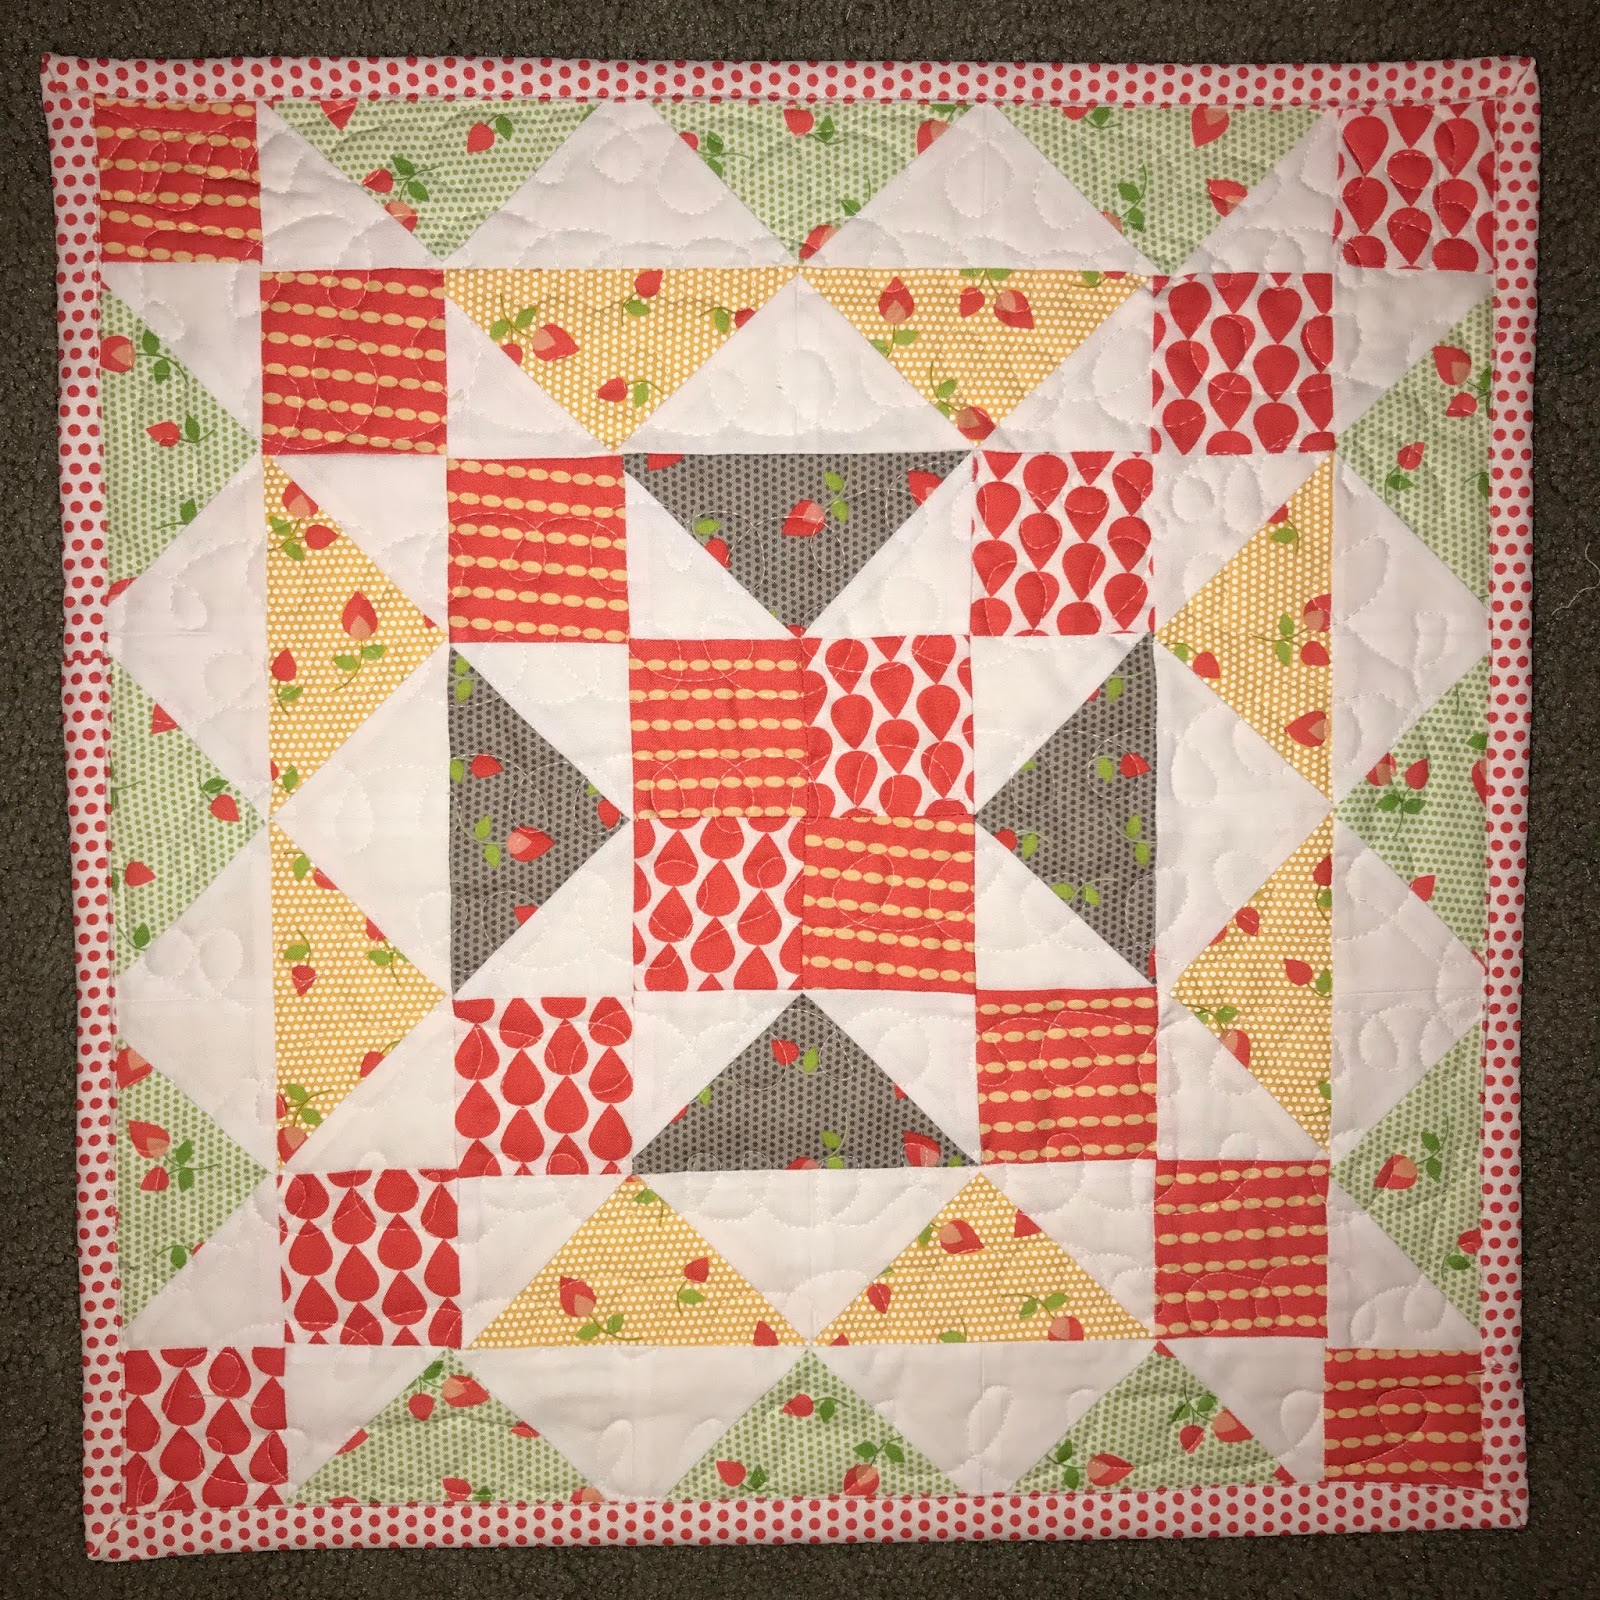 Neverlandstitches : The beginning and a Mini Quilt Pattern